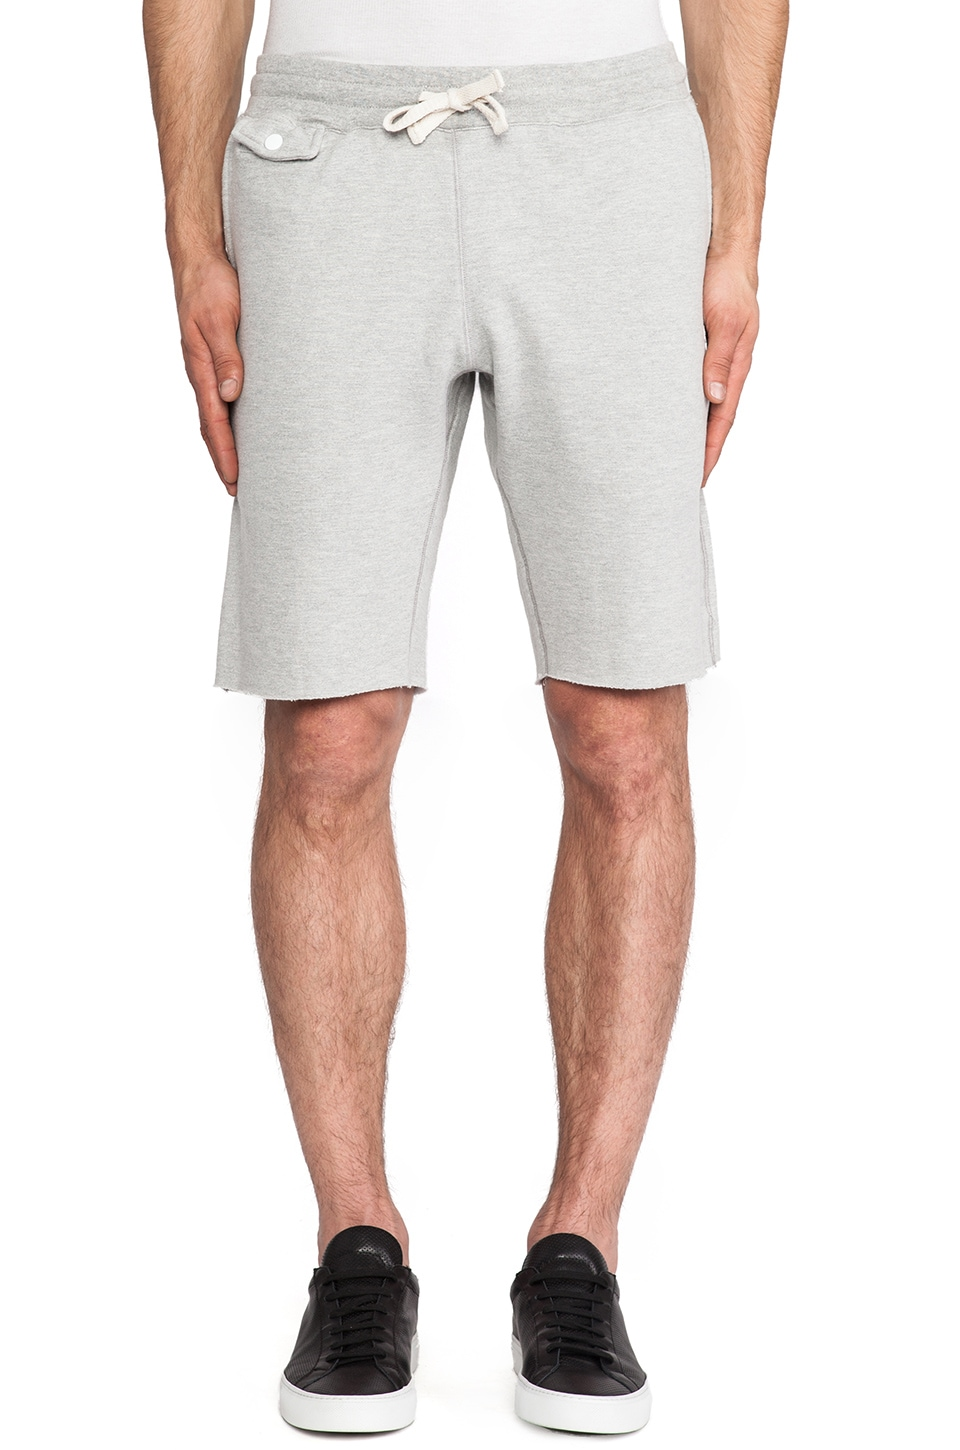 S&H Athletics Marino Sweatshort in Heather Grey